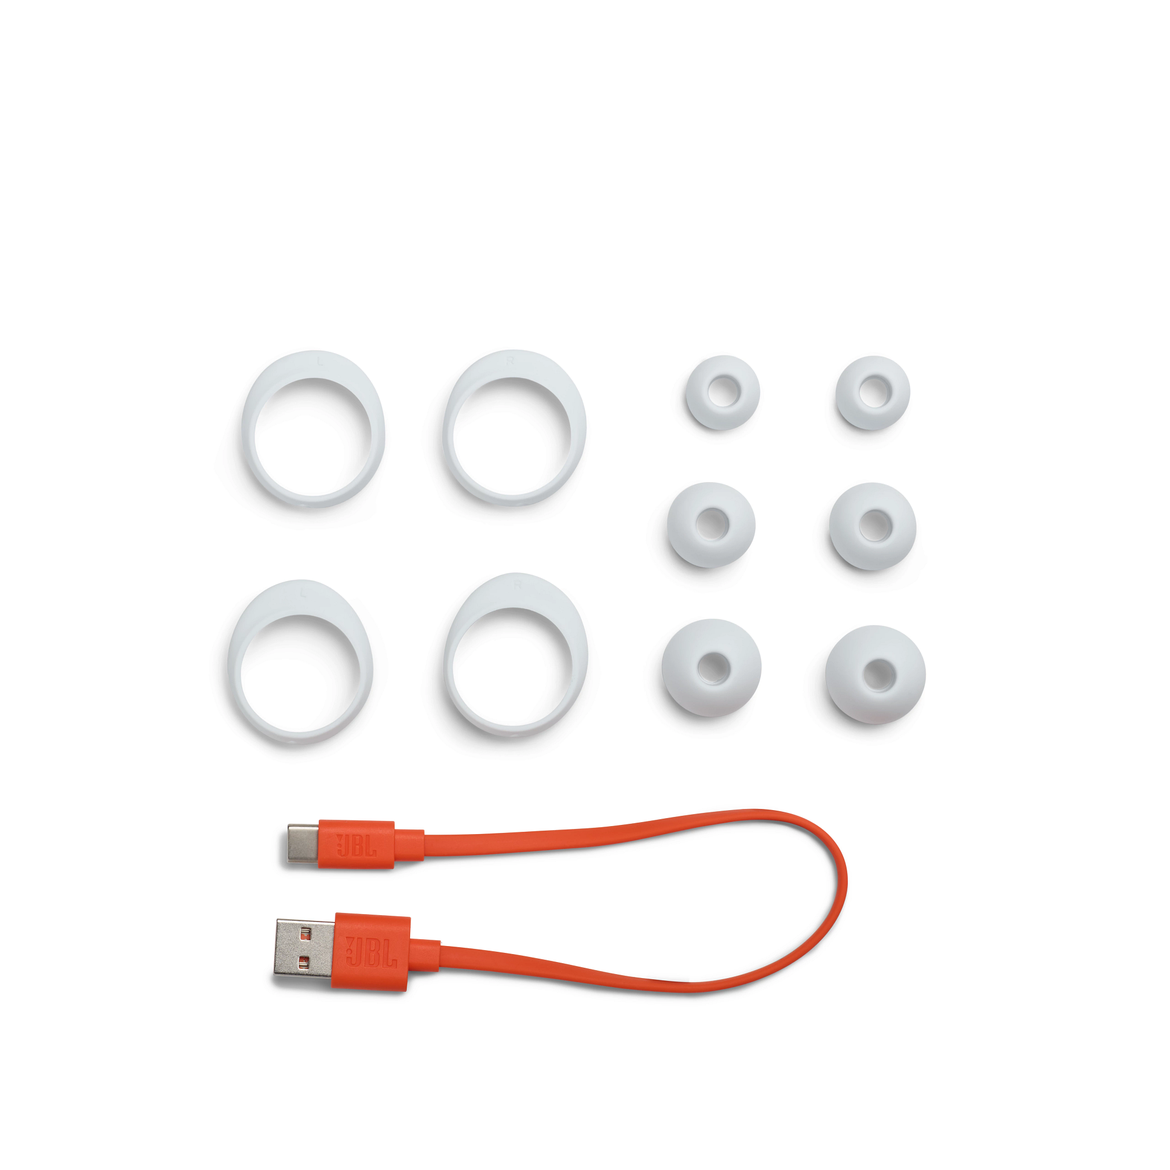 JBL_LIVE_FREE_NC TWS_Product image_Accessories_White